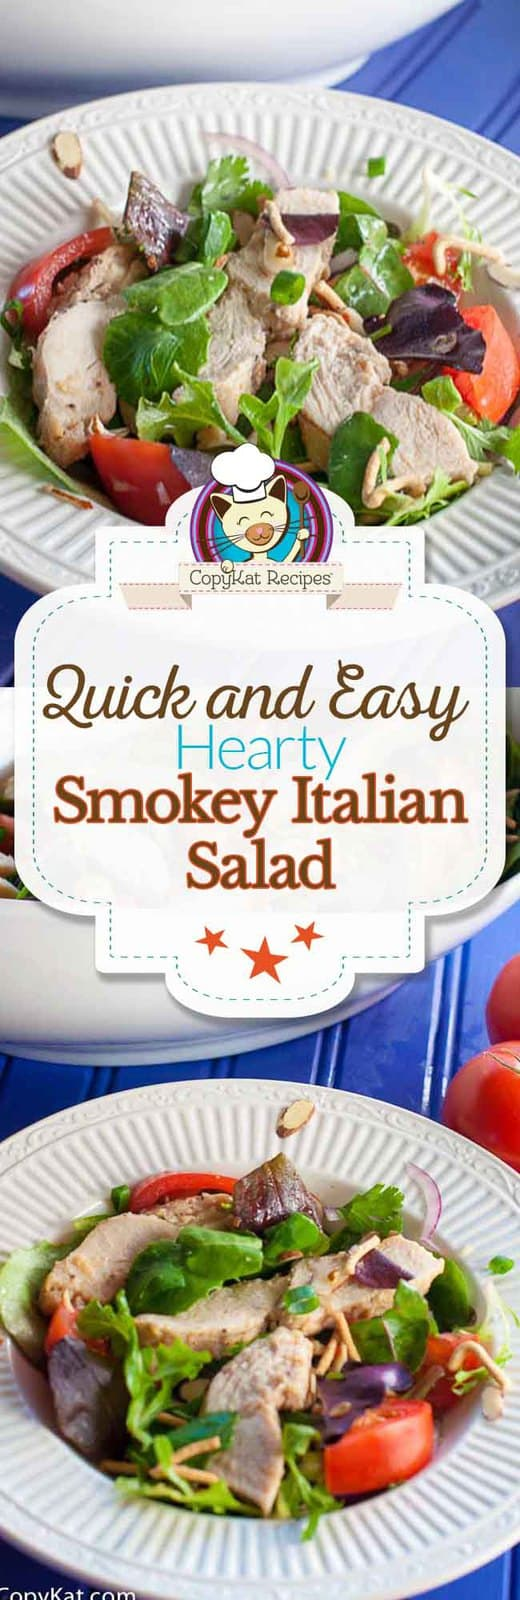 Enjoy this Smokey Italian Salad Dressing made with Wish-Bone® Italian Dressing and Tyson® Grilled & Ready® Chicken #TBD.